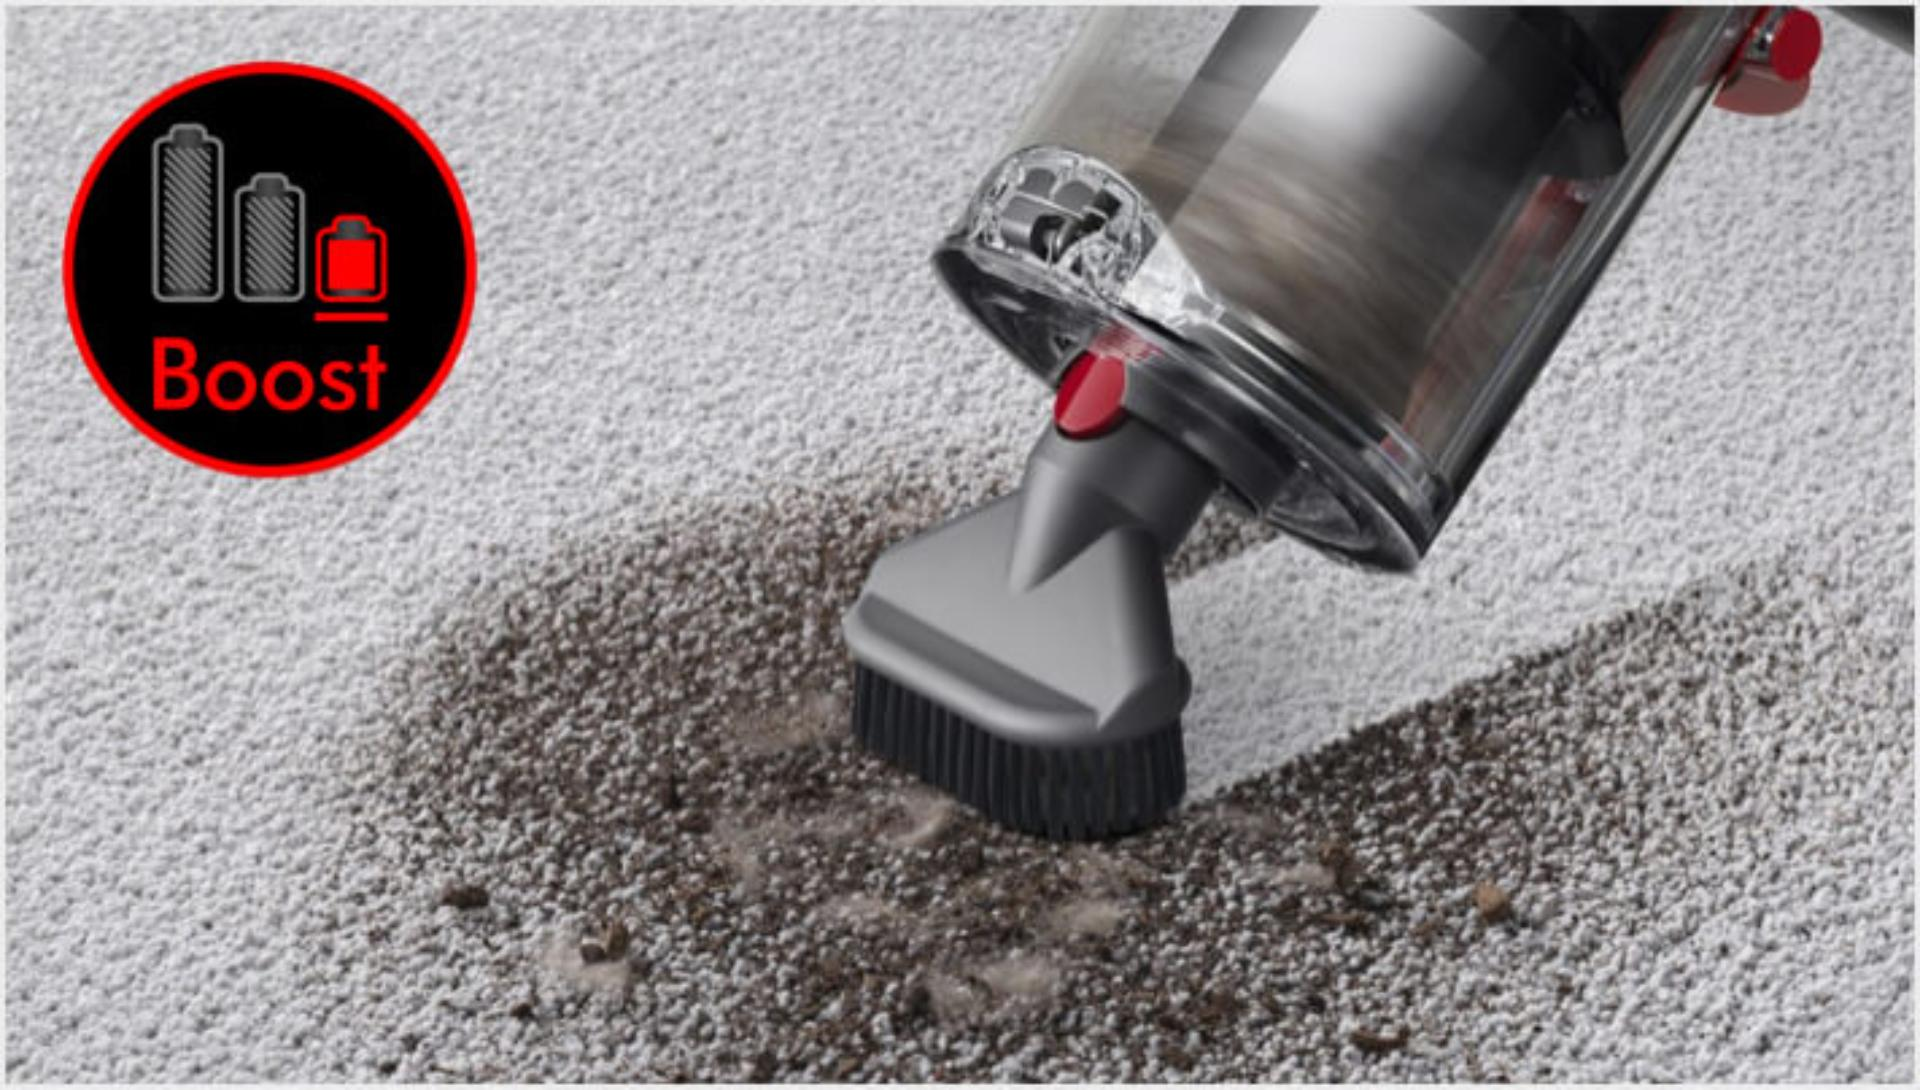 Dyson V11 vacuum cleaning ground-in dirt